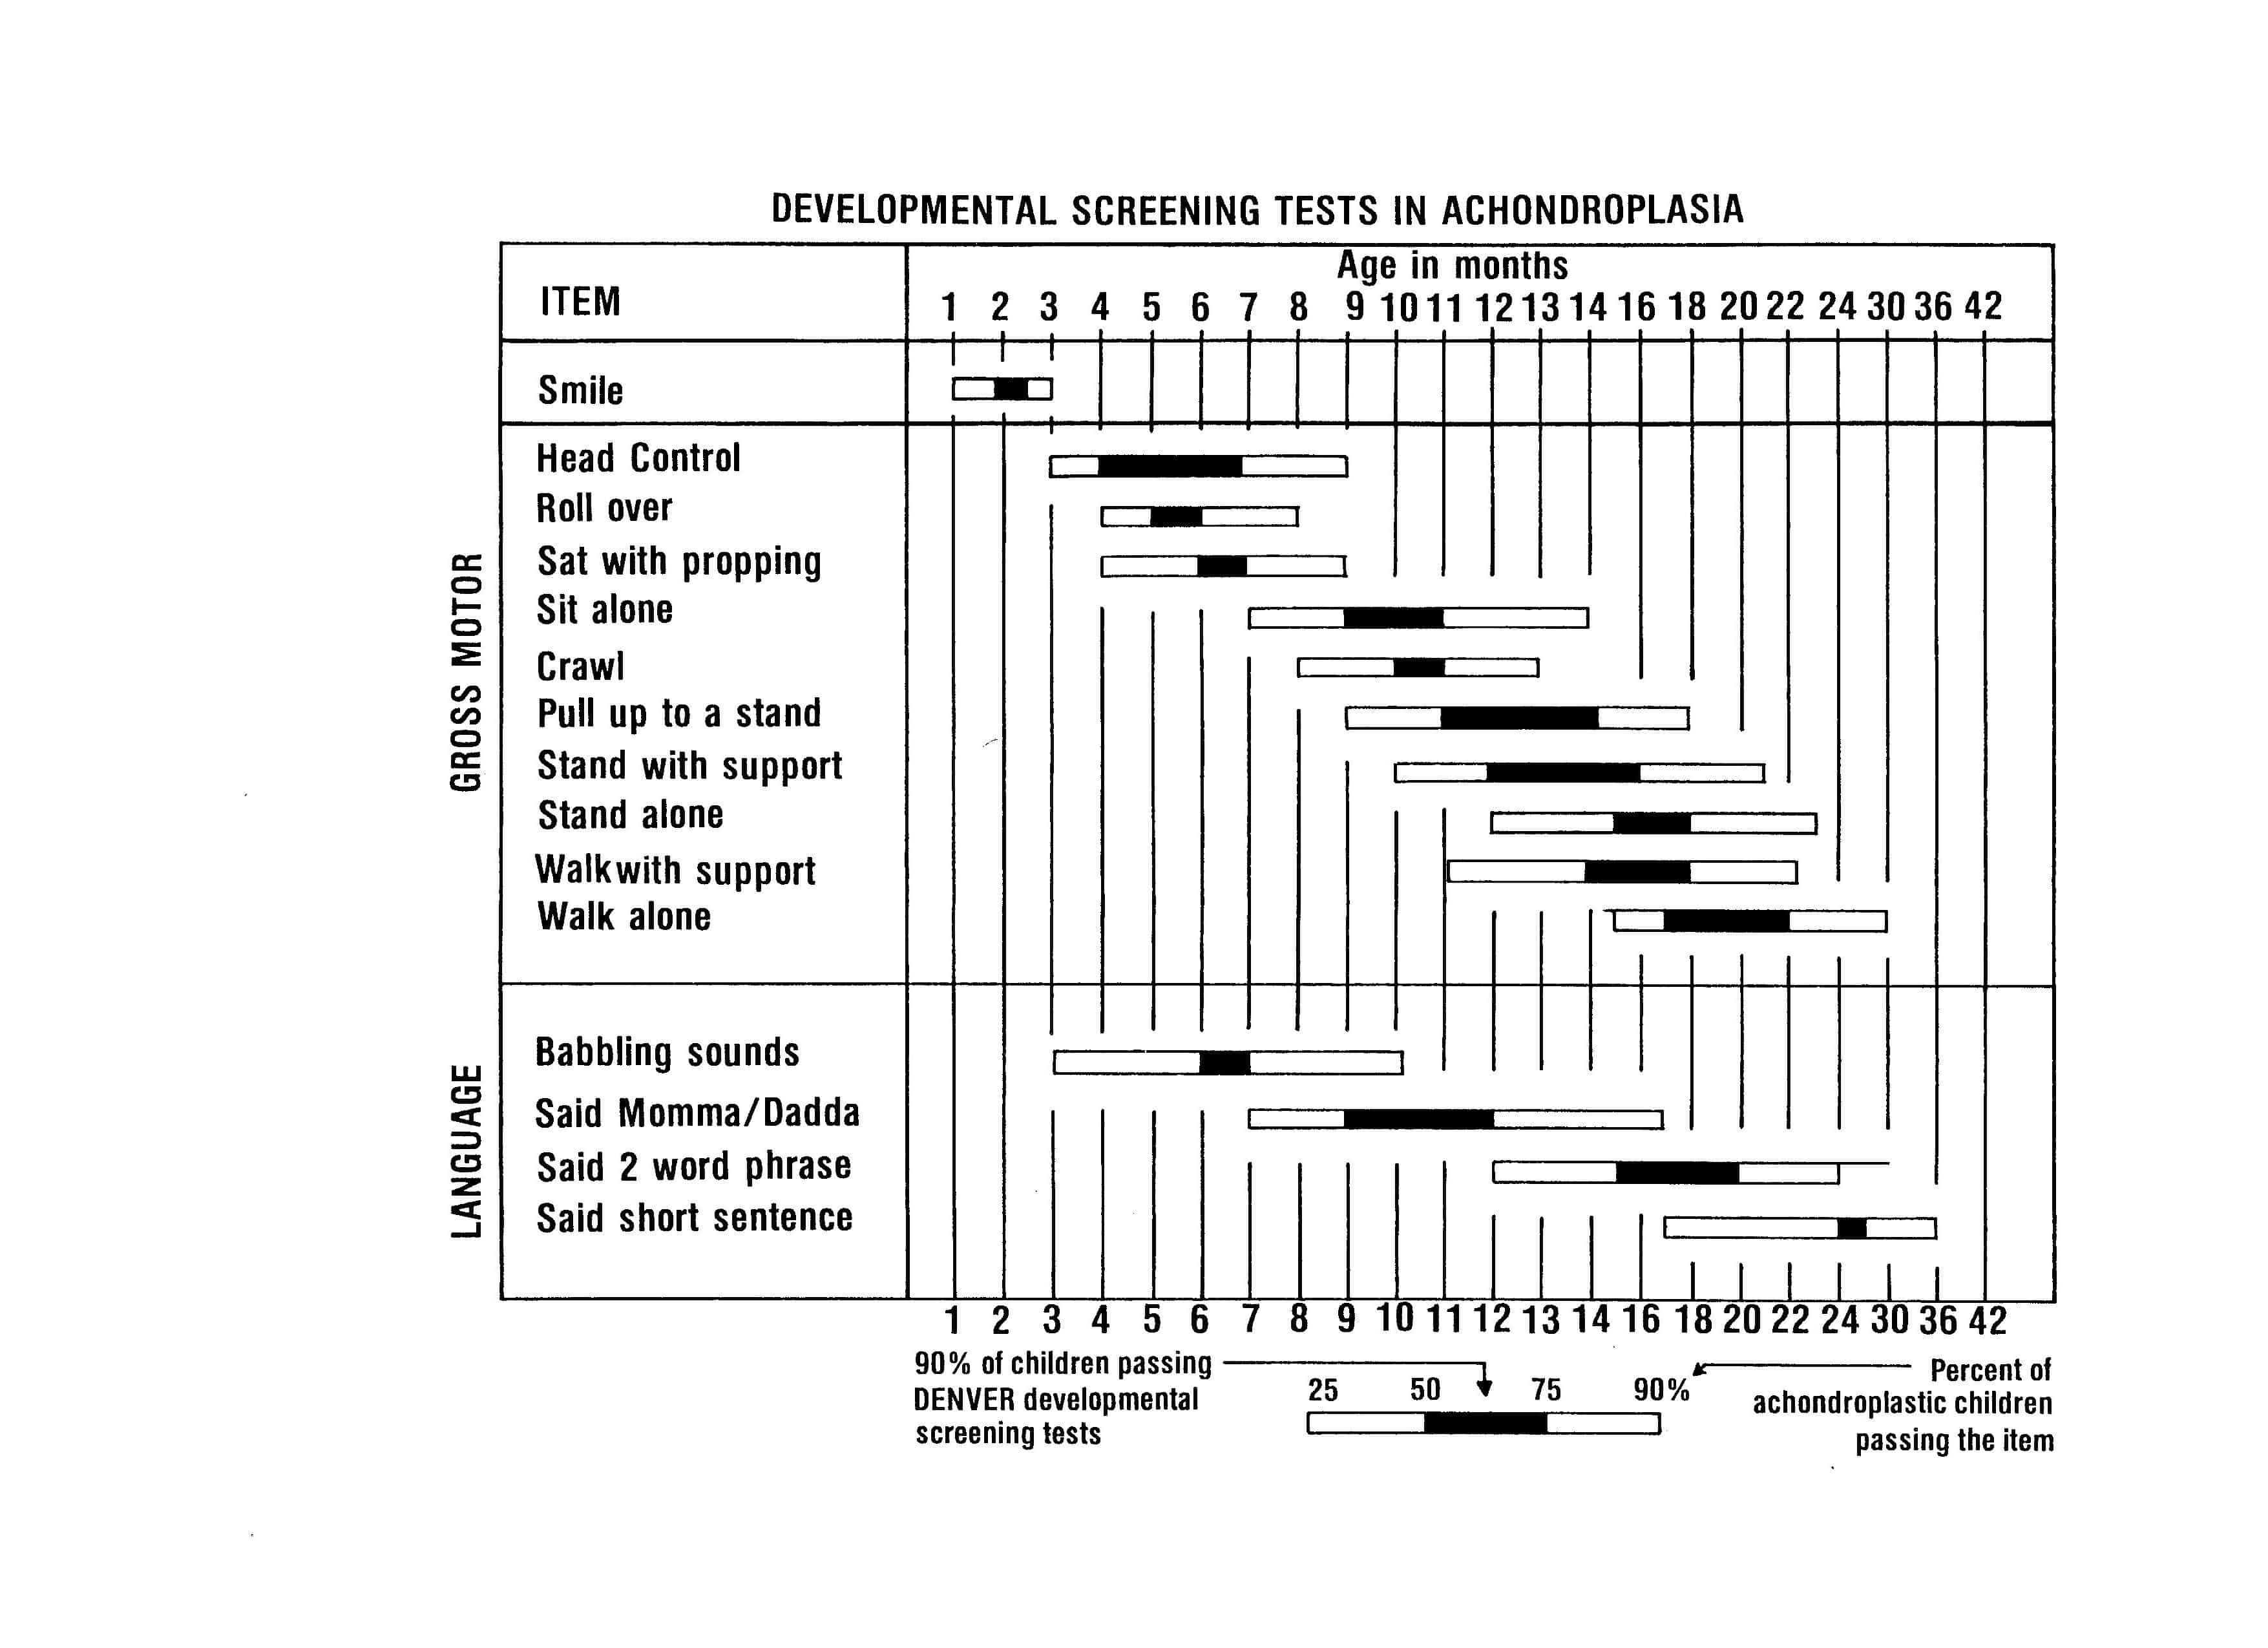 Achondroplasia growth and motor milestones charts delicious little these are not the only achondroplasia growth charts you may come across these charts include the ones we were given by our geneticist as well as a couple altavistaventures Image collections